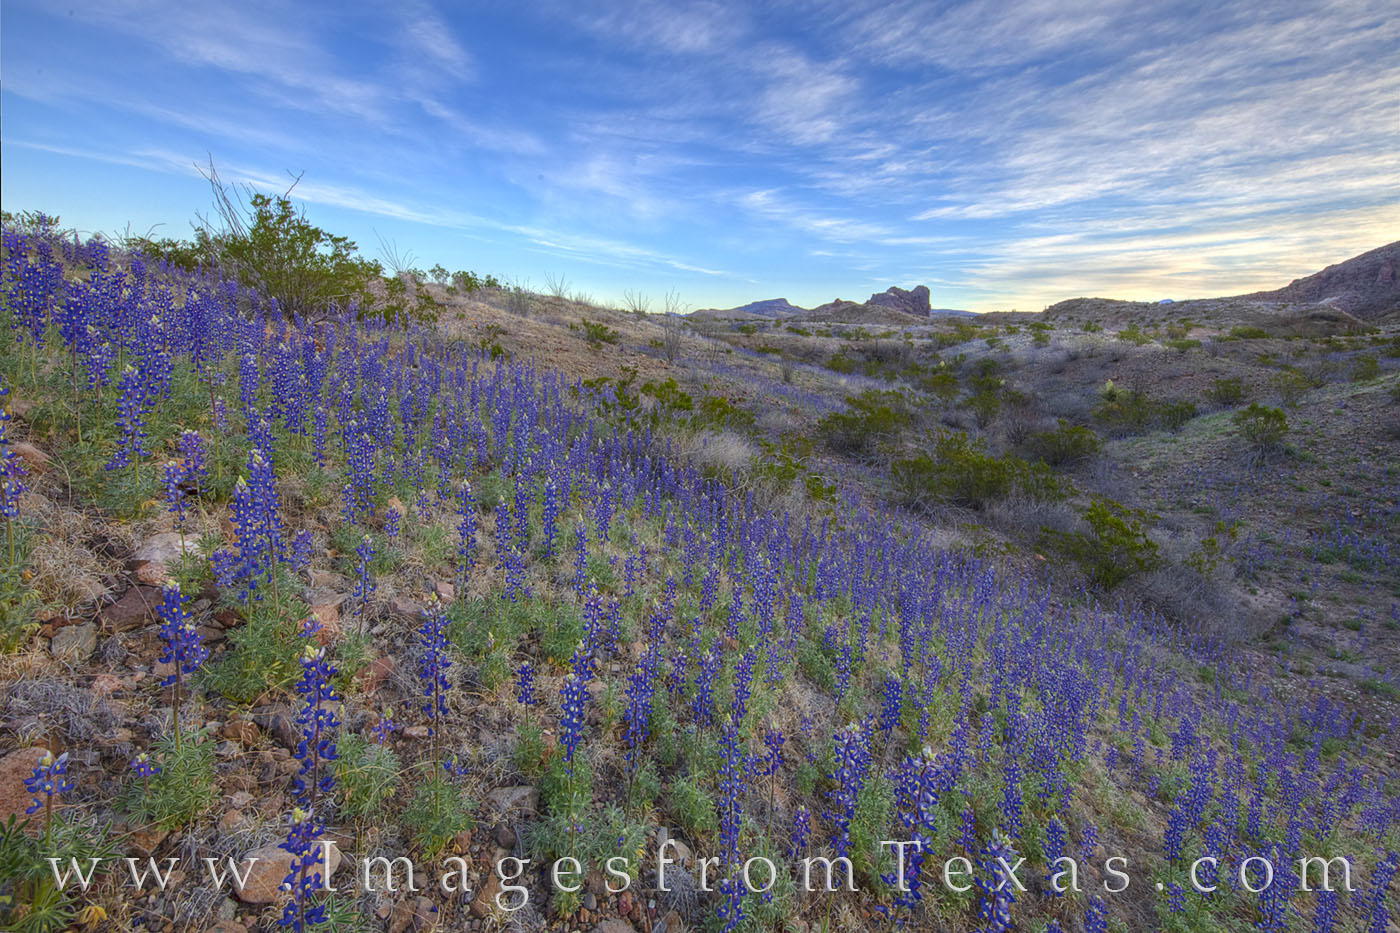 Big bend bluebonnets, bluebonnets, big bend, big bend national park, Texas national park, cerro castellan, ross Maxwell, sunrise, west Texas, Texas wildflowers, spring, February, 2019, blue, chihuahua, photo